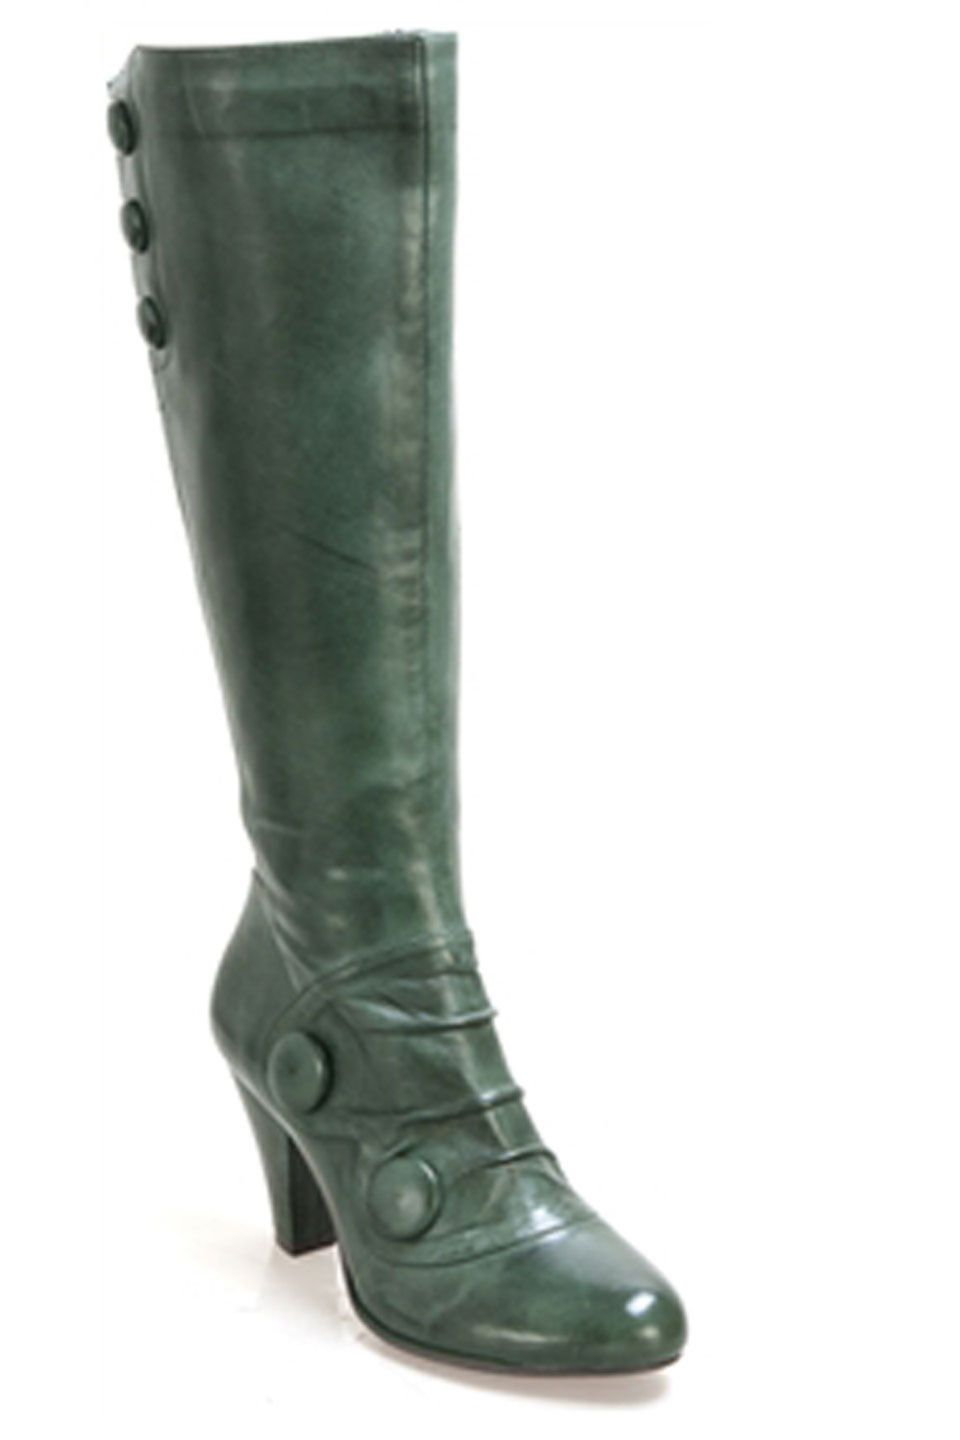 Miz Mooz Caddy Tall Boots with Button Detail in Forest - Beyond the Rack